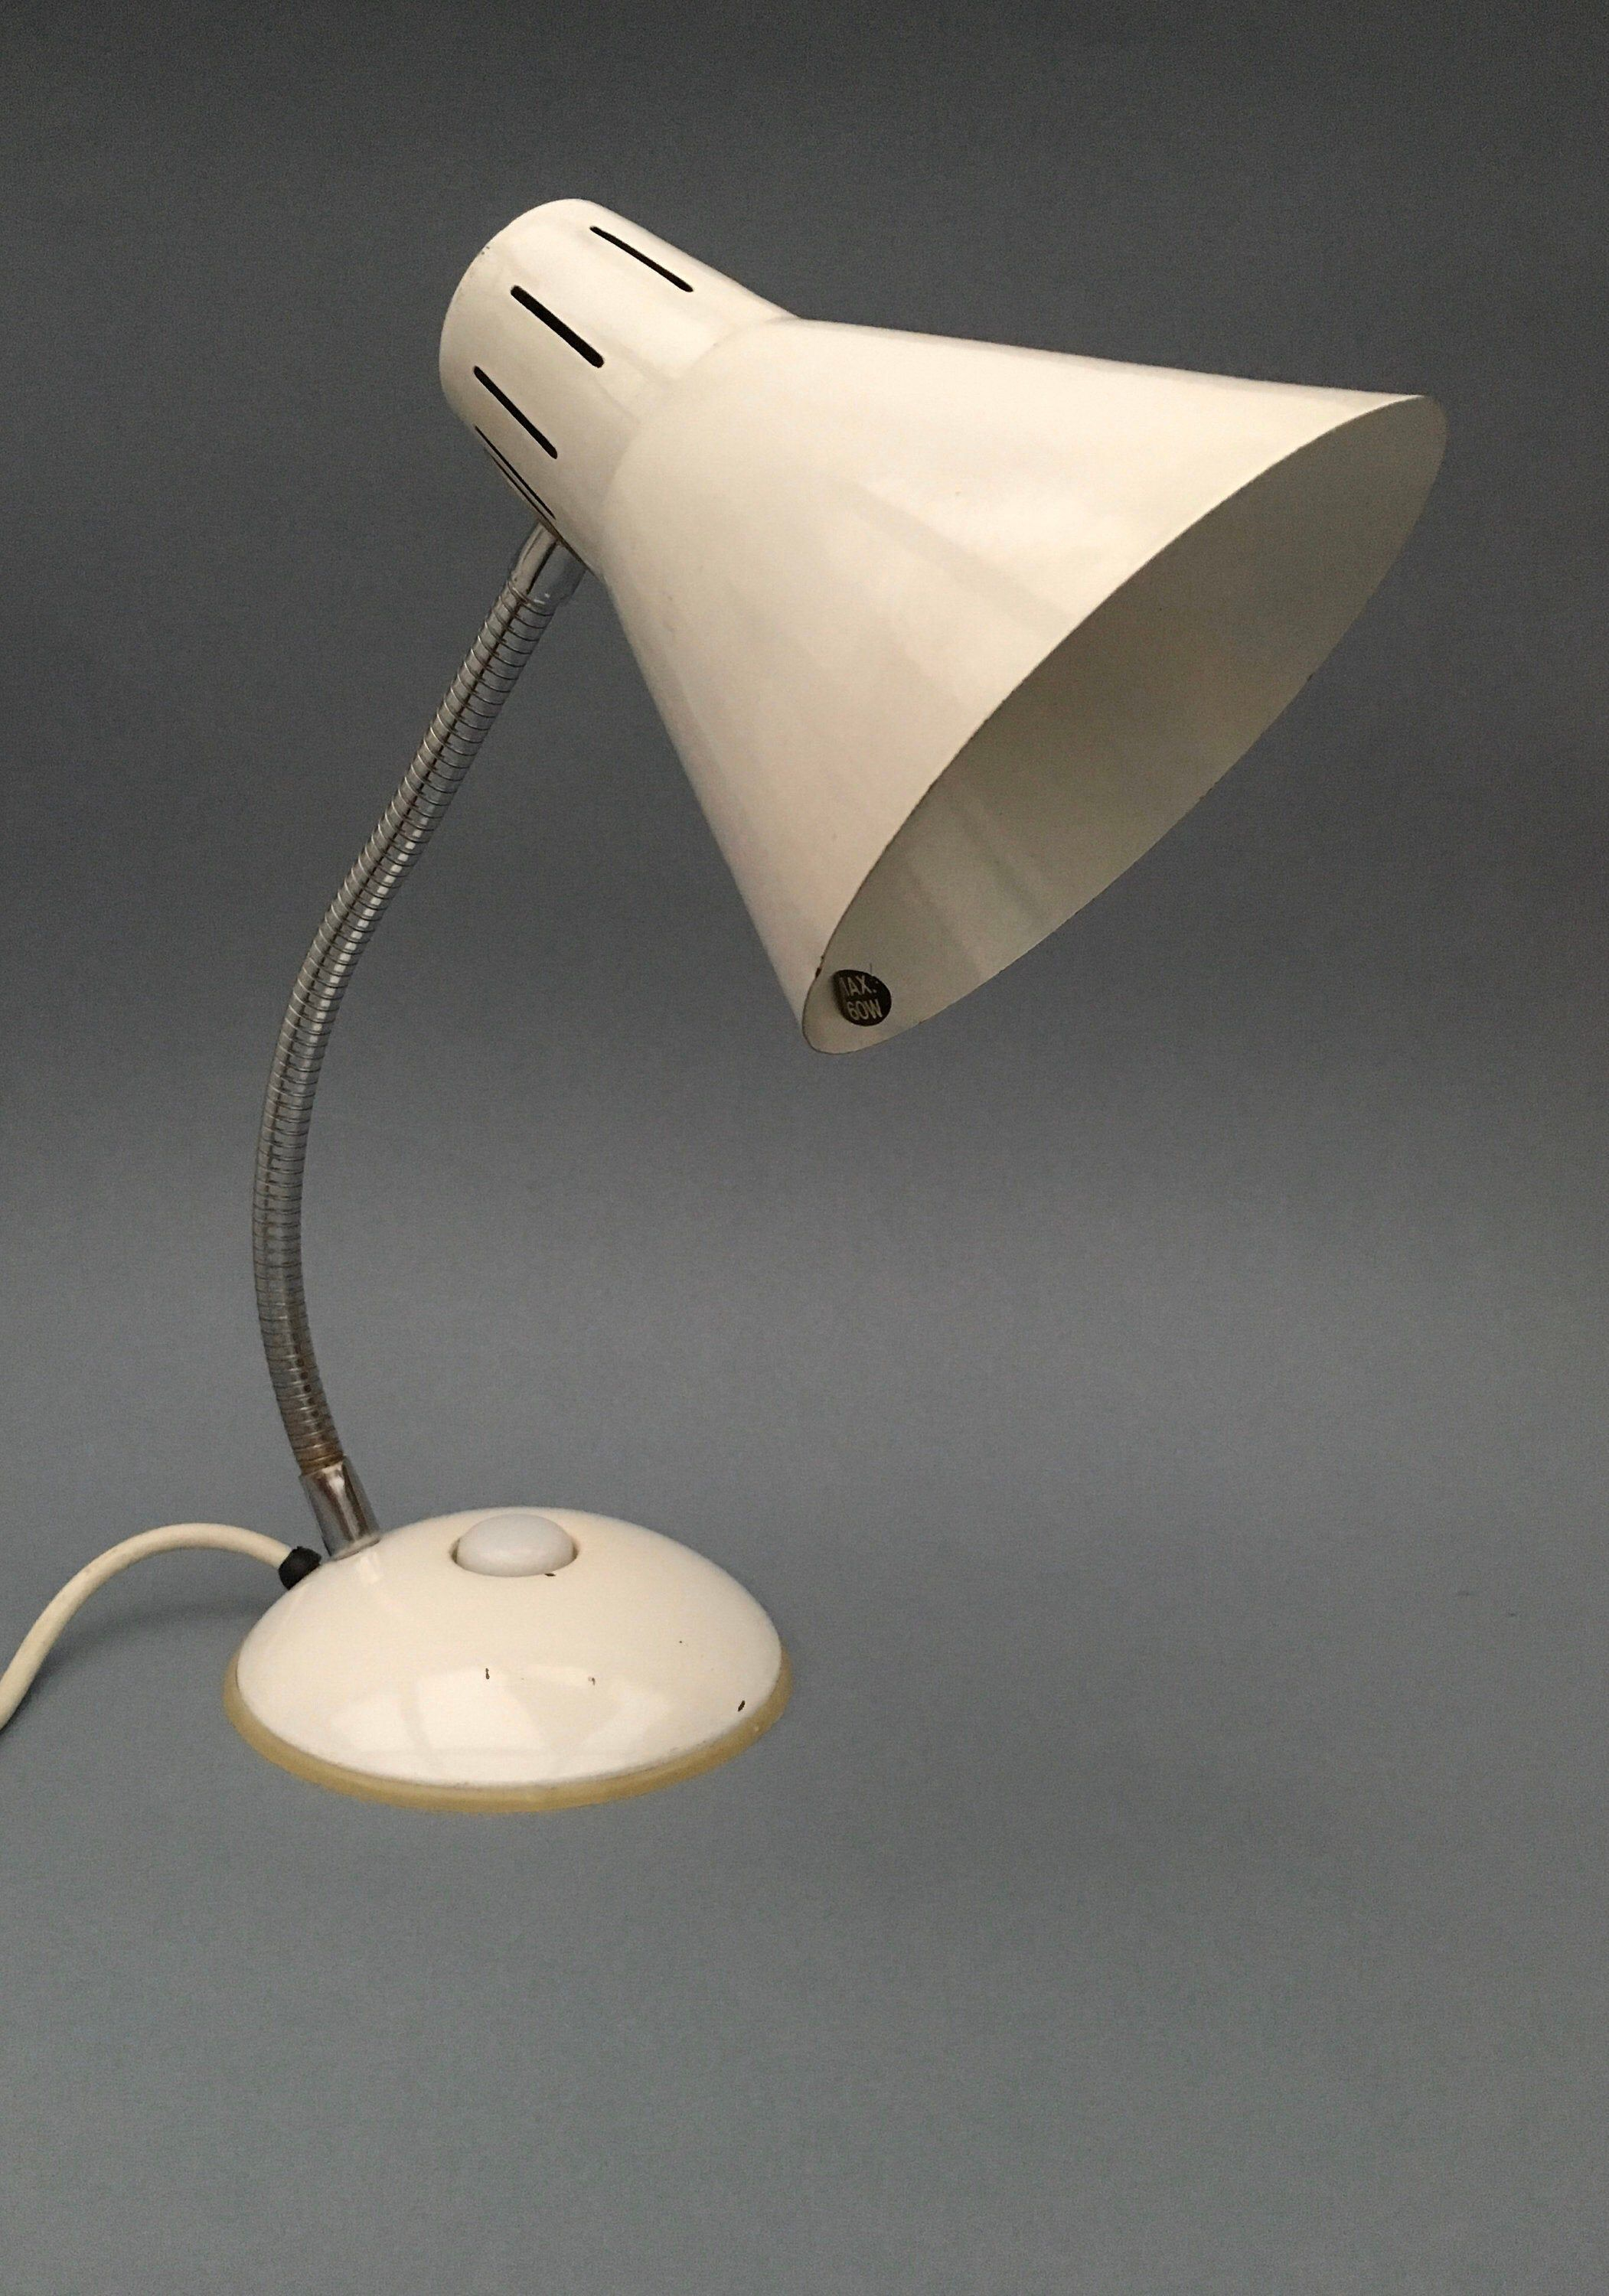 Excited To Share This Item From My Etsy Shop Vintage White Desk Lamp Light Gooseneck Adjustable Metal Light Made Retro Desk Lamp Desk Lamp Vintage White Desk